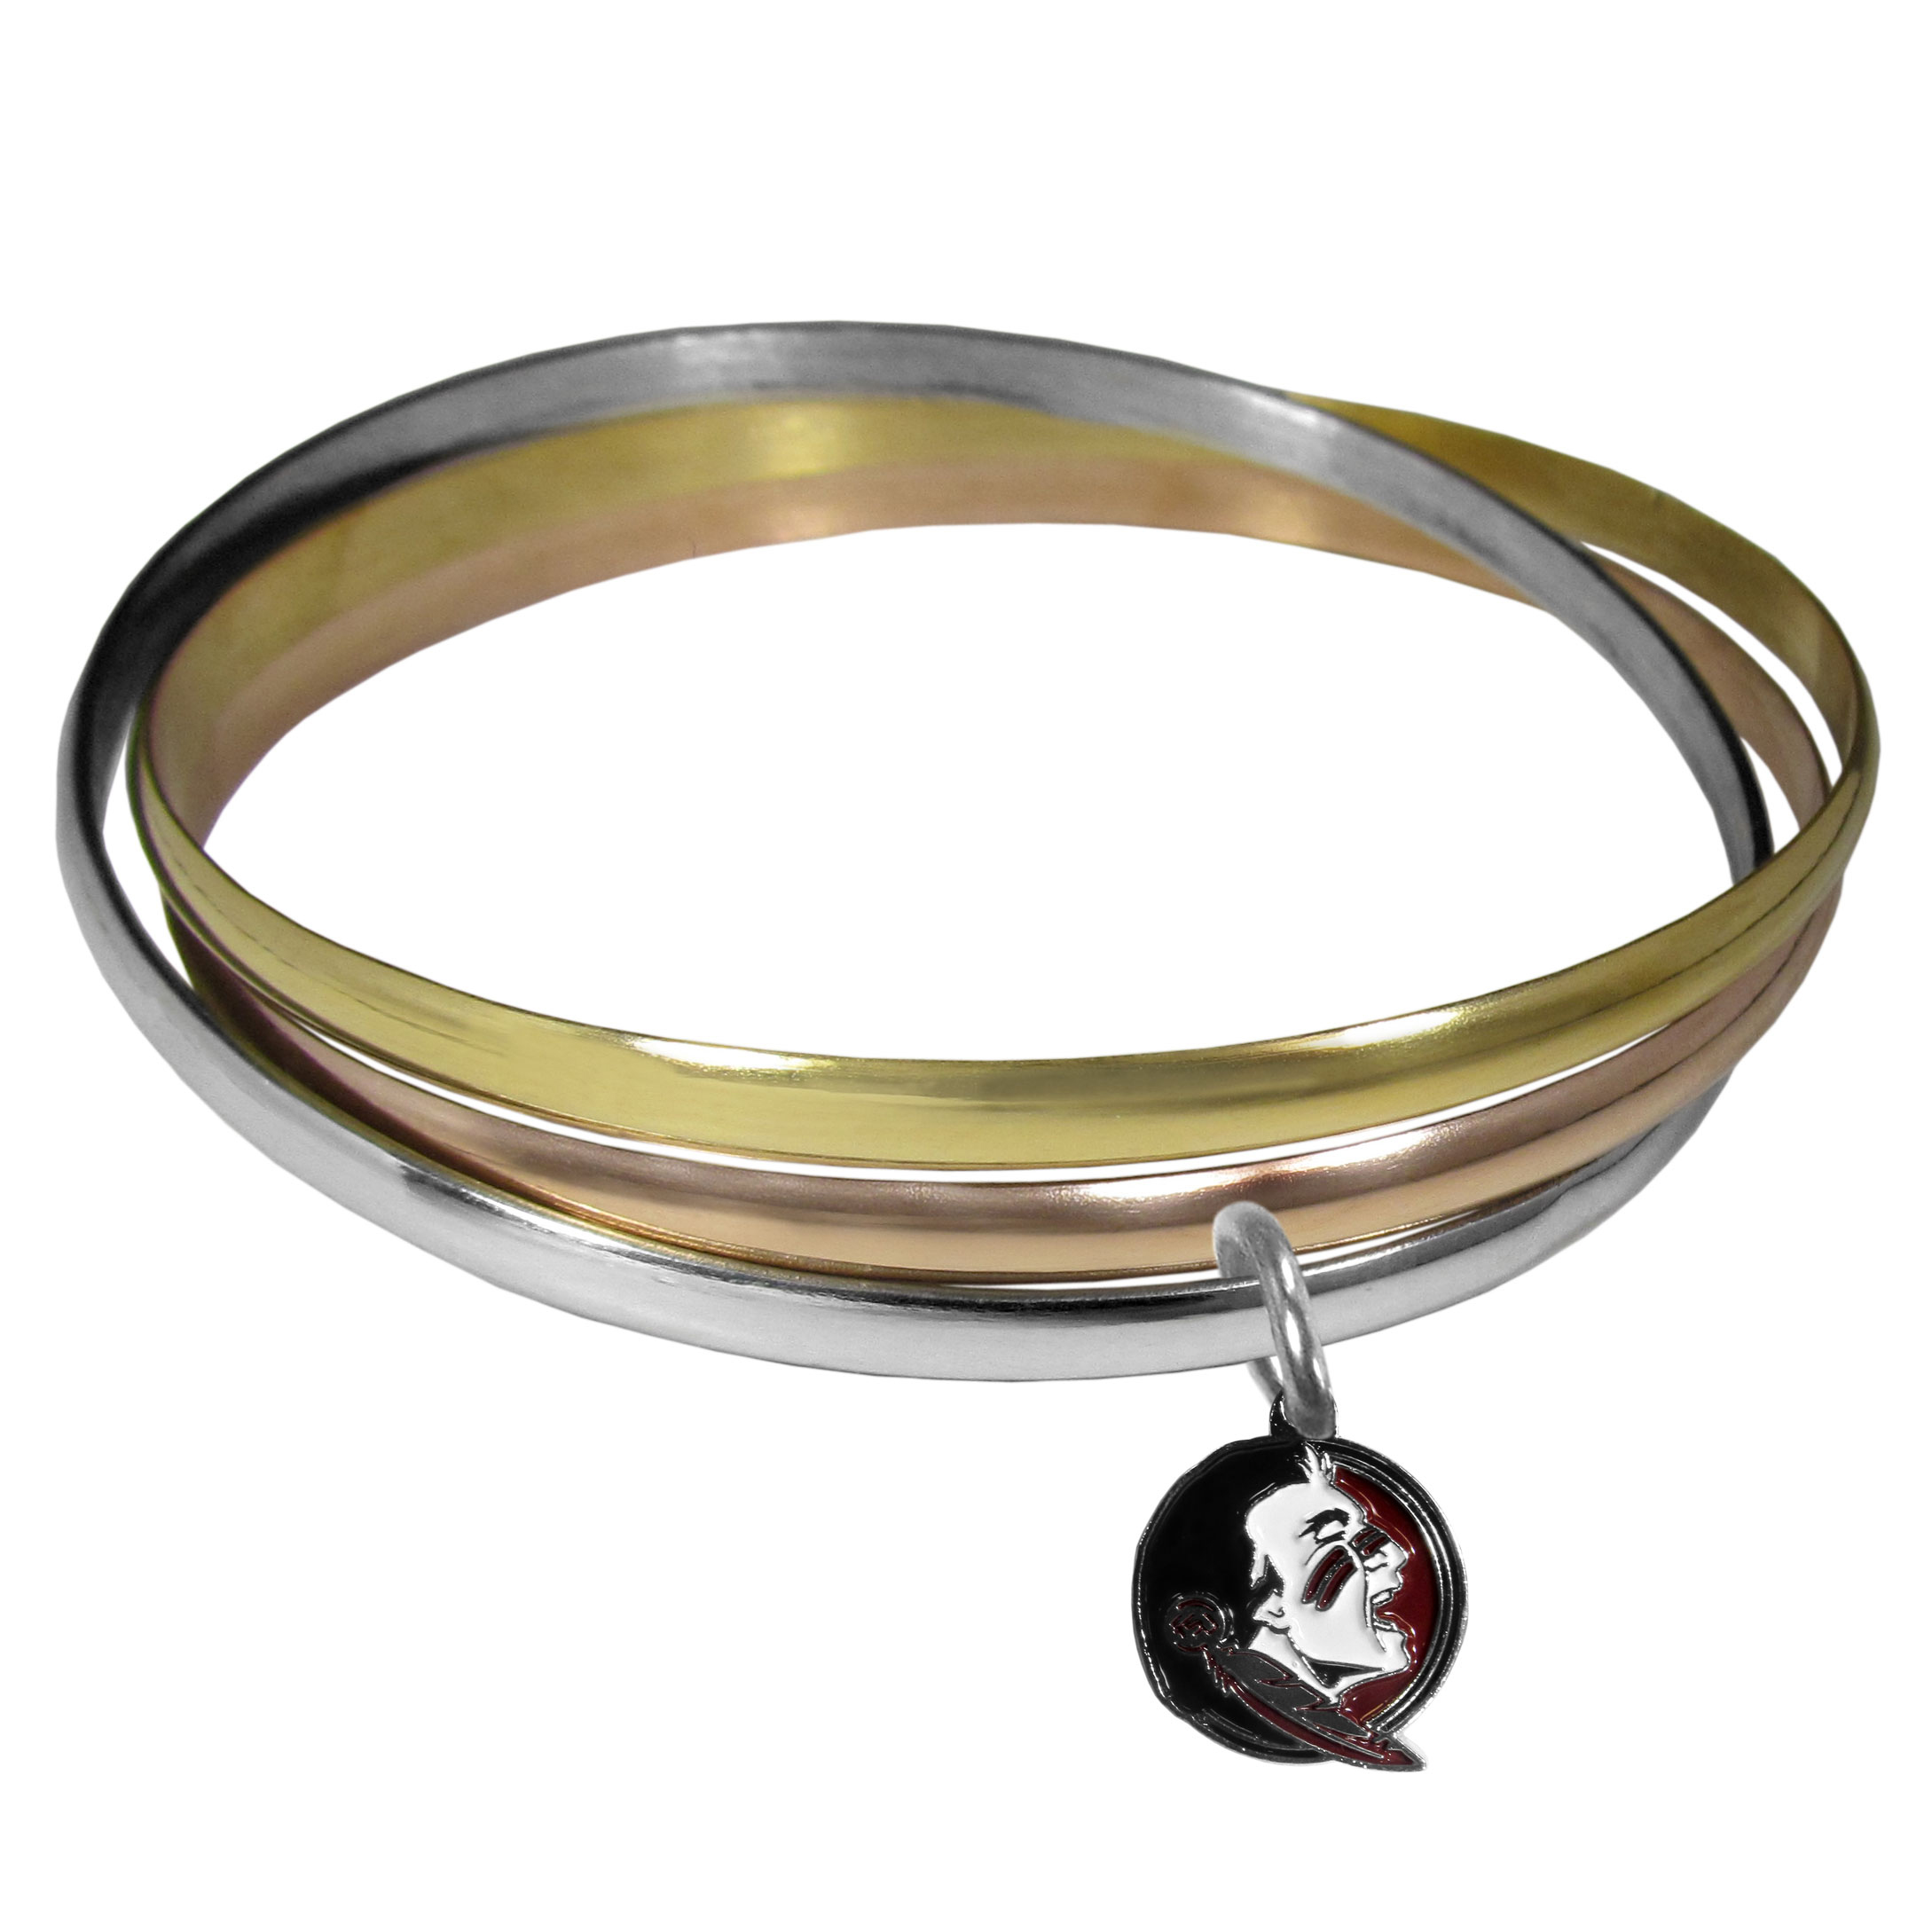 Florida St. Seminoles Tri-color Bangle Bracelet - These beautiful bangles come in a interlocking style and feature a fully cast Florida St. Seminoles charm with enameled team colors. The bracelet has a silver toned bangle, gold tone bangle and brass toned bangle.